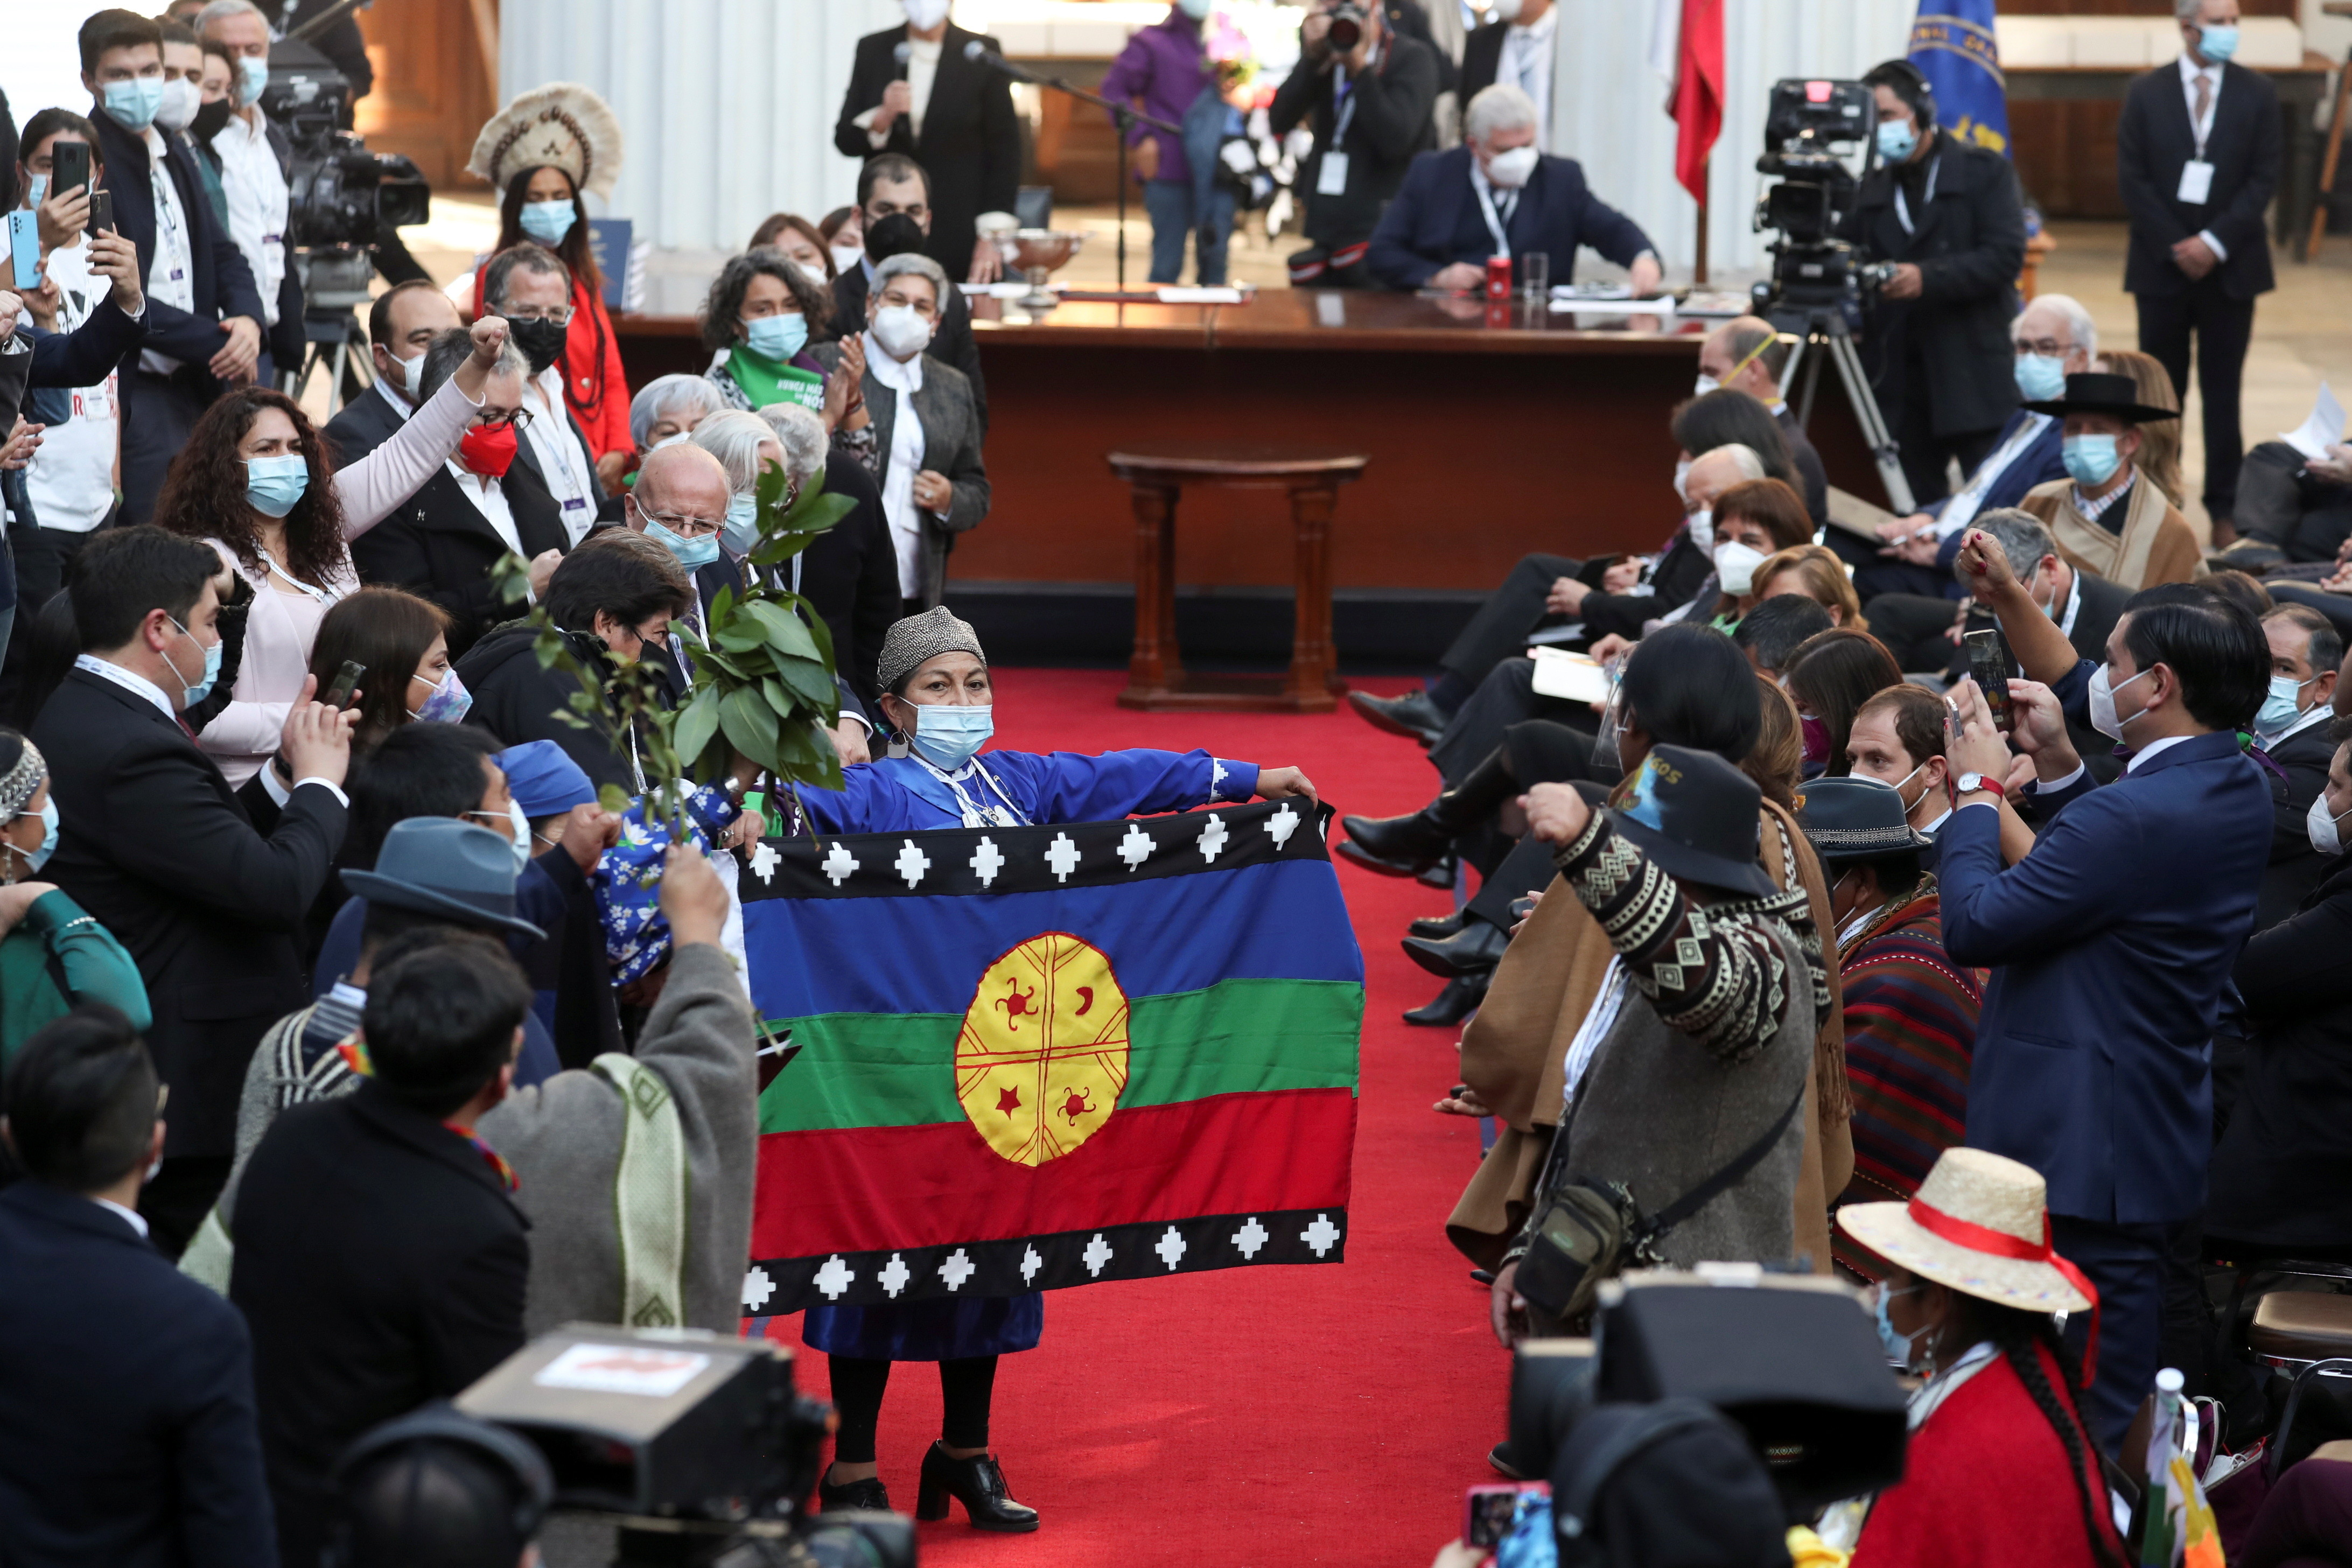 Constitutional assembly president Elisa Loncon holds up a flag as assembly members gather for the first session to draft a new constitution, in Santiago